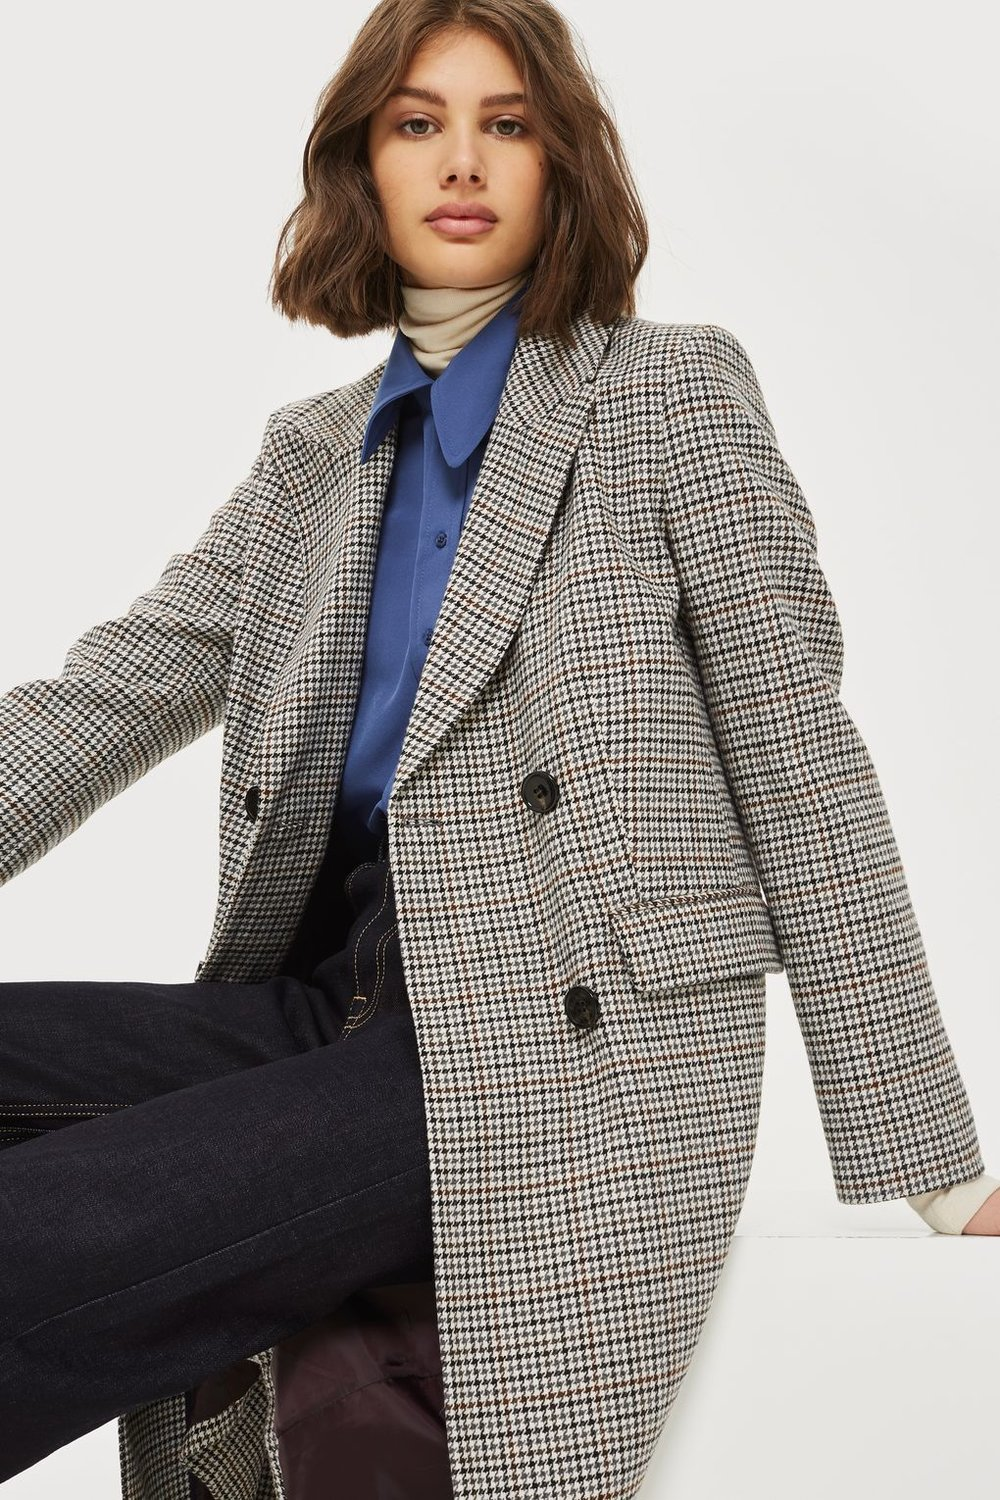 Checked Editor's Crombie Coat, Topshop, £95